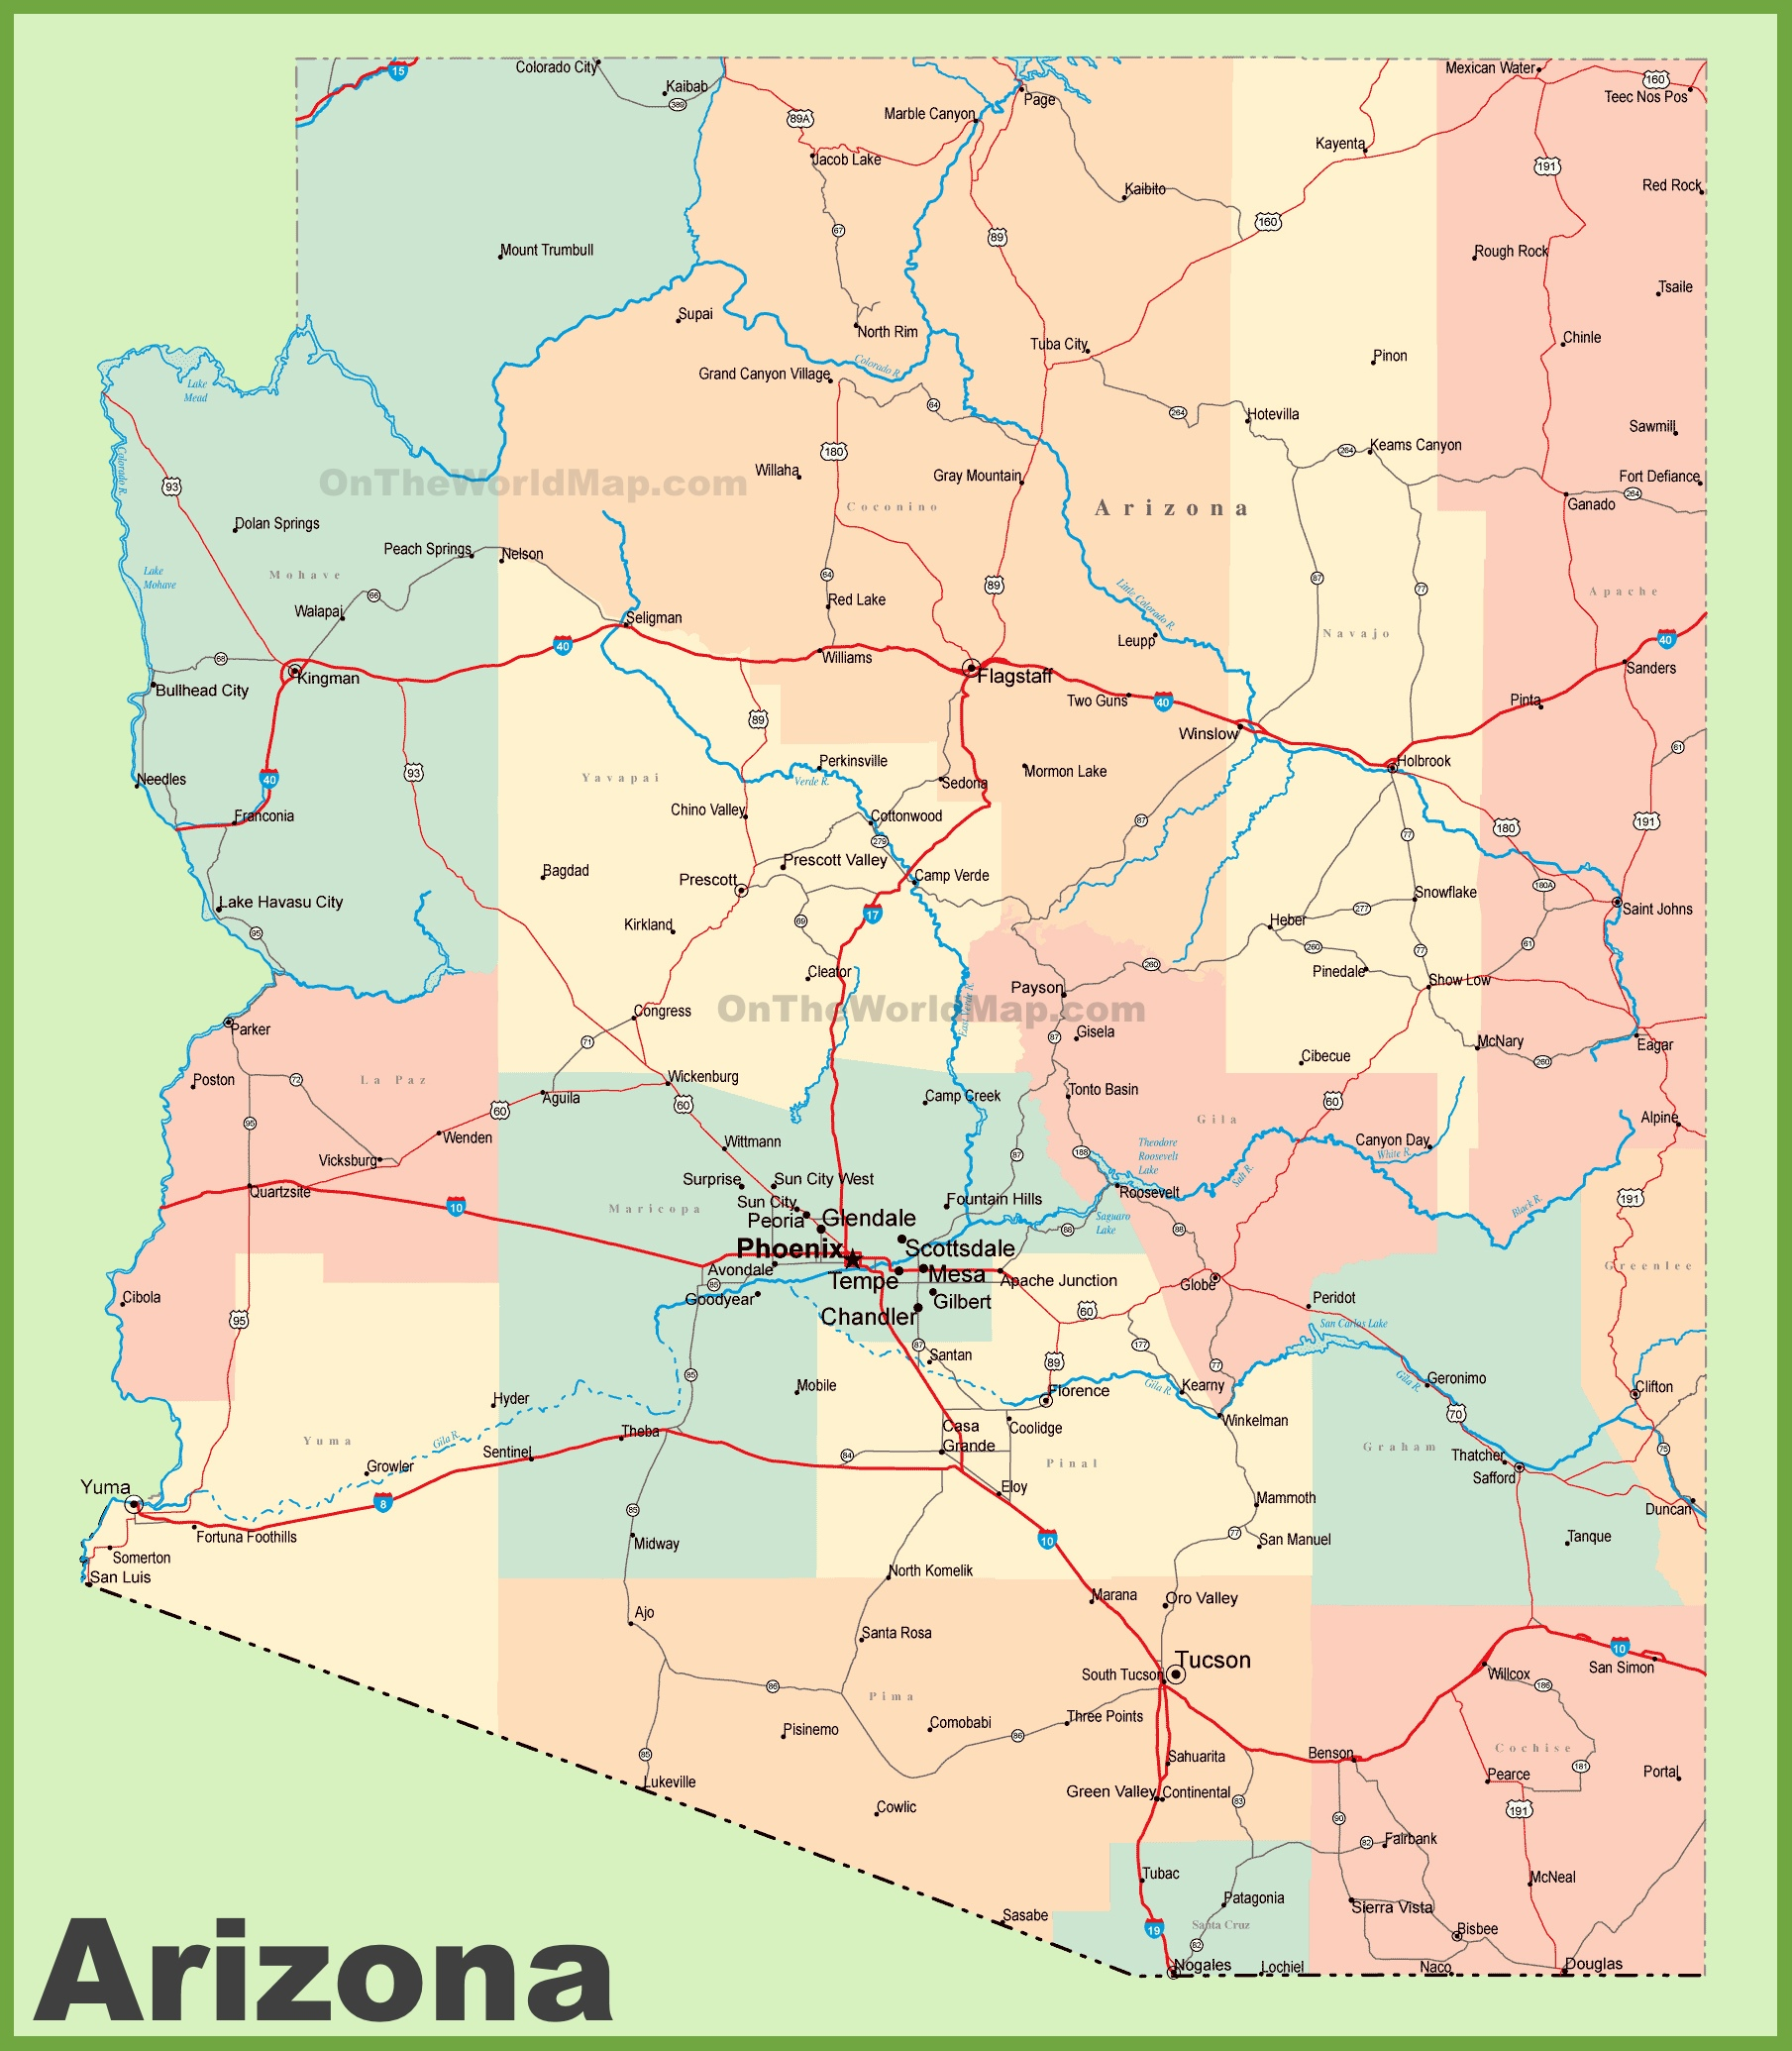 Map Of Arizona Towns And Cities.Arizona Road Map With Cities And Towns